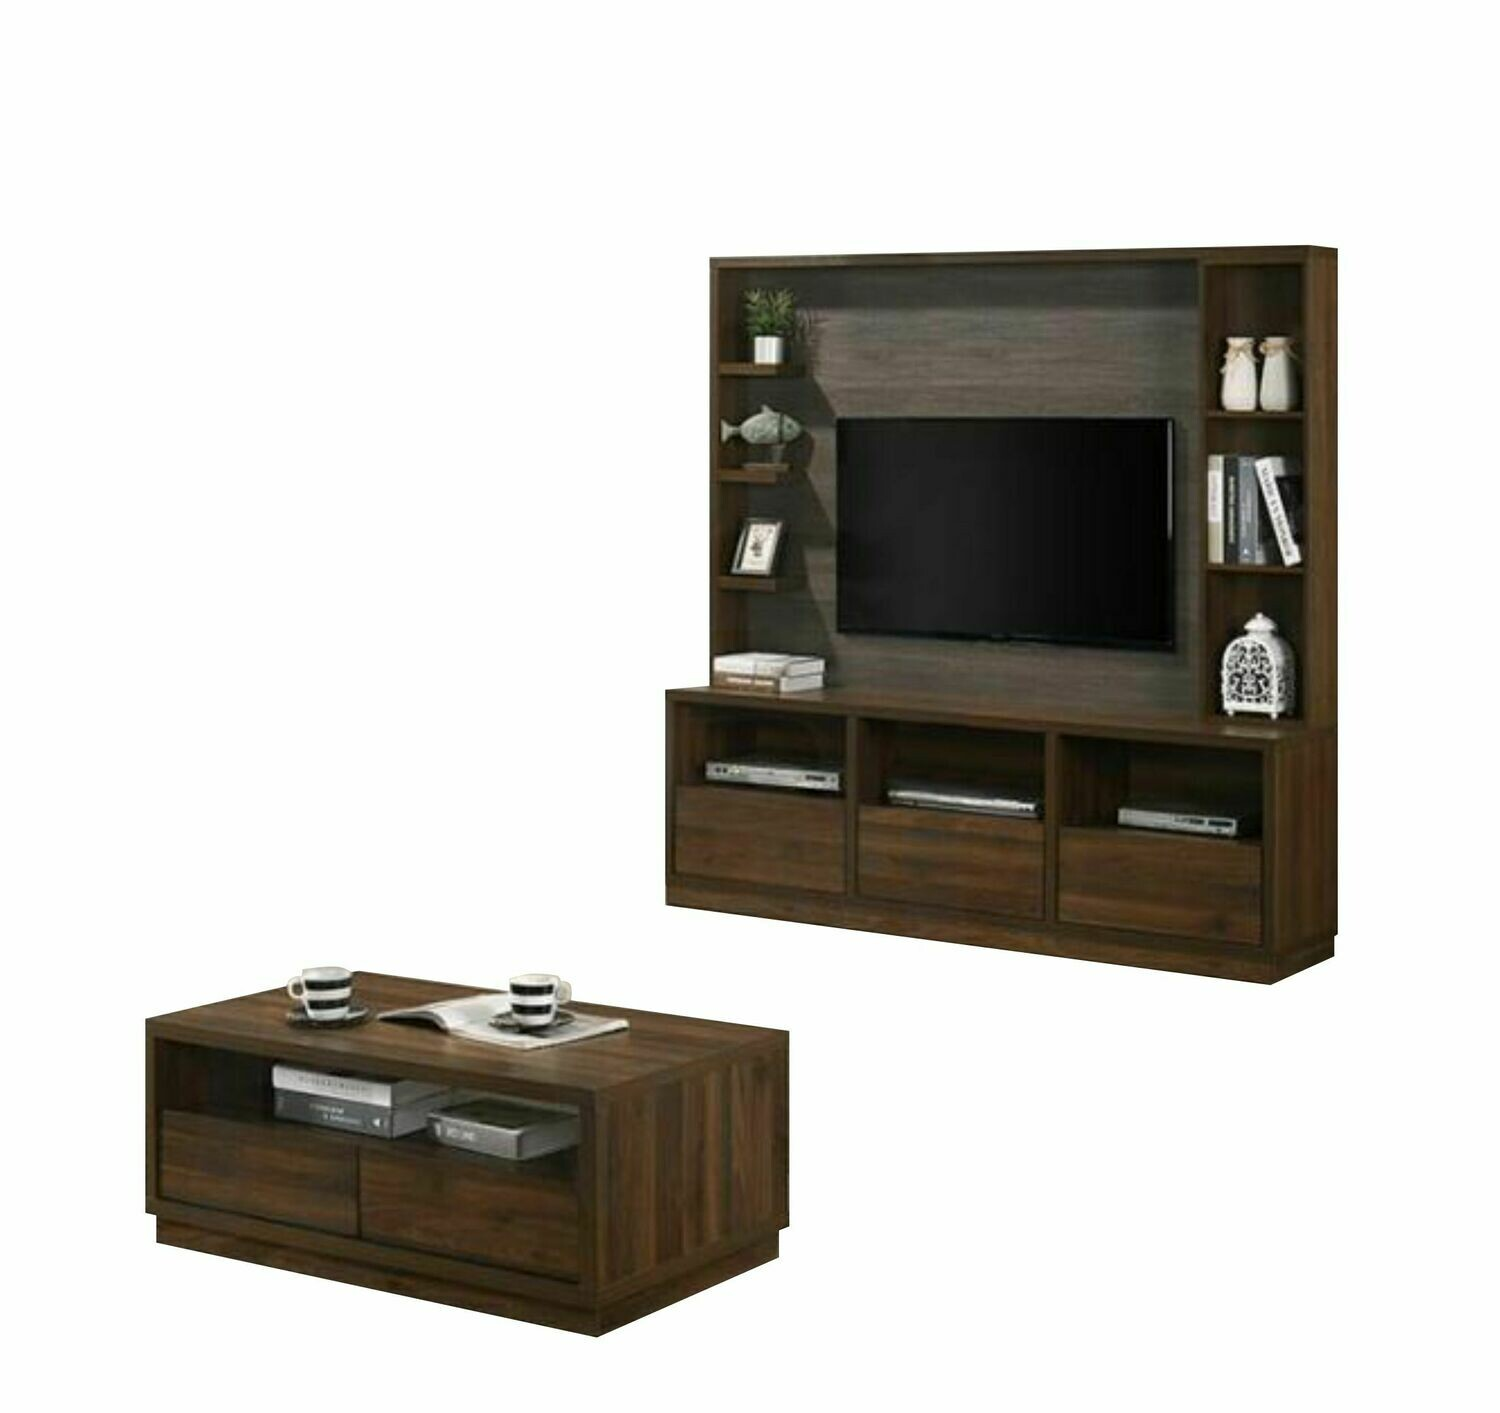 [Combo Packages] 6' High TV Cabinet + Coffee table